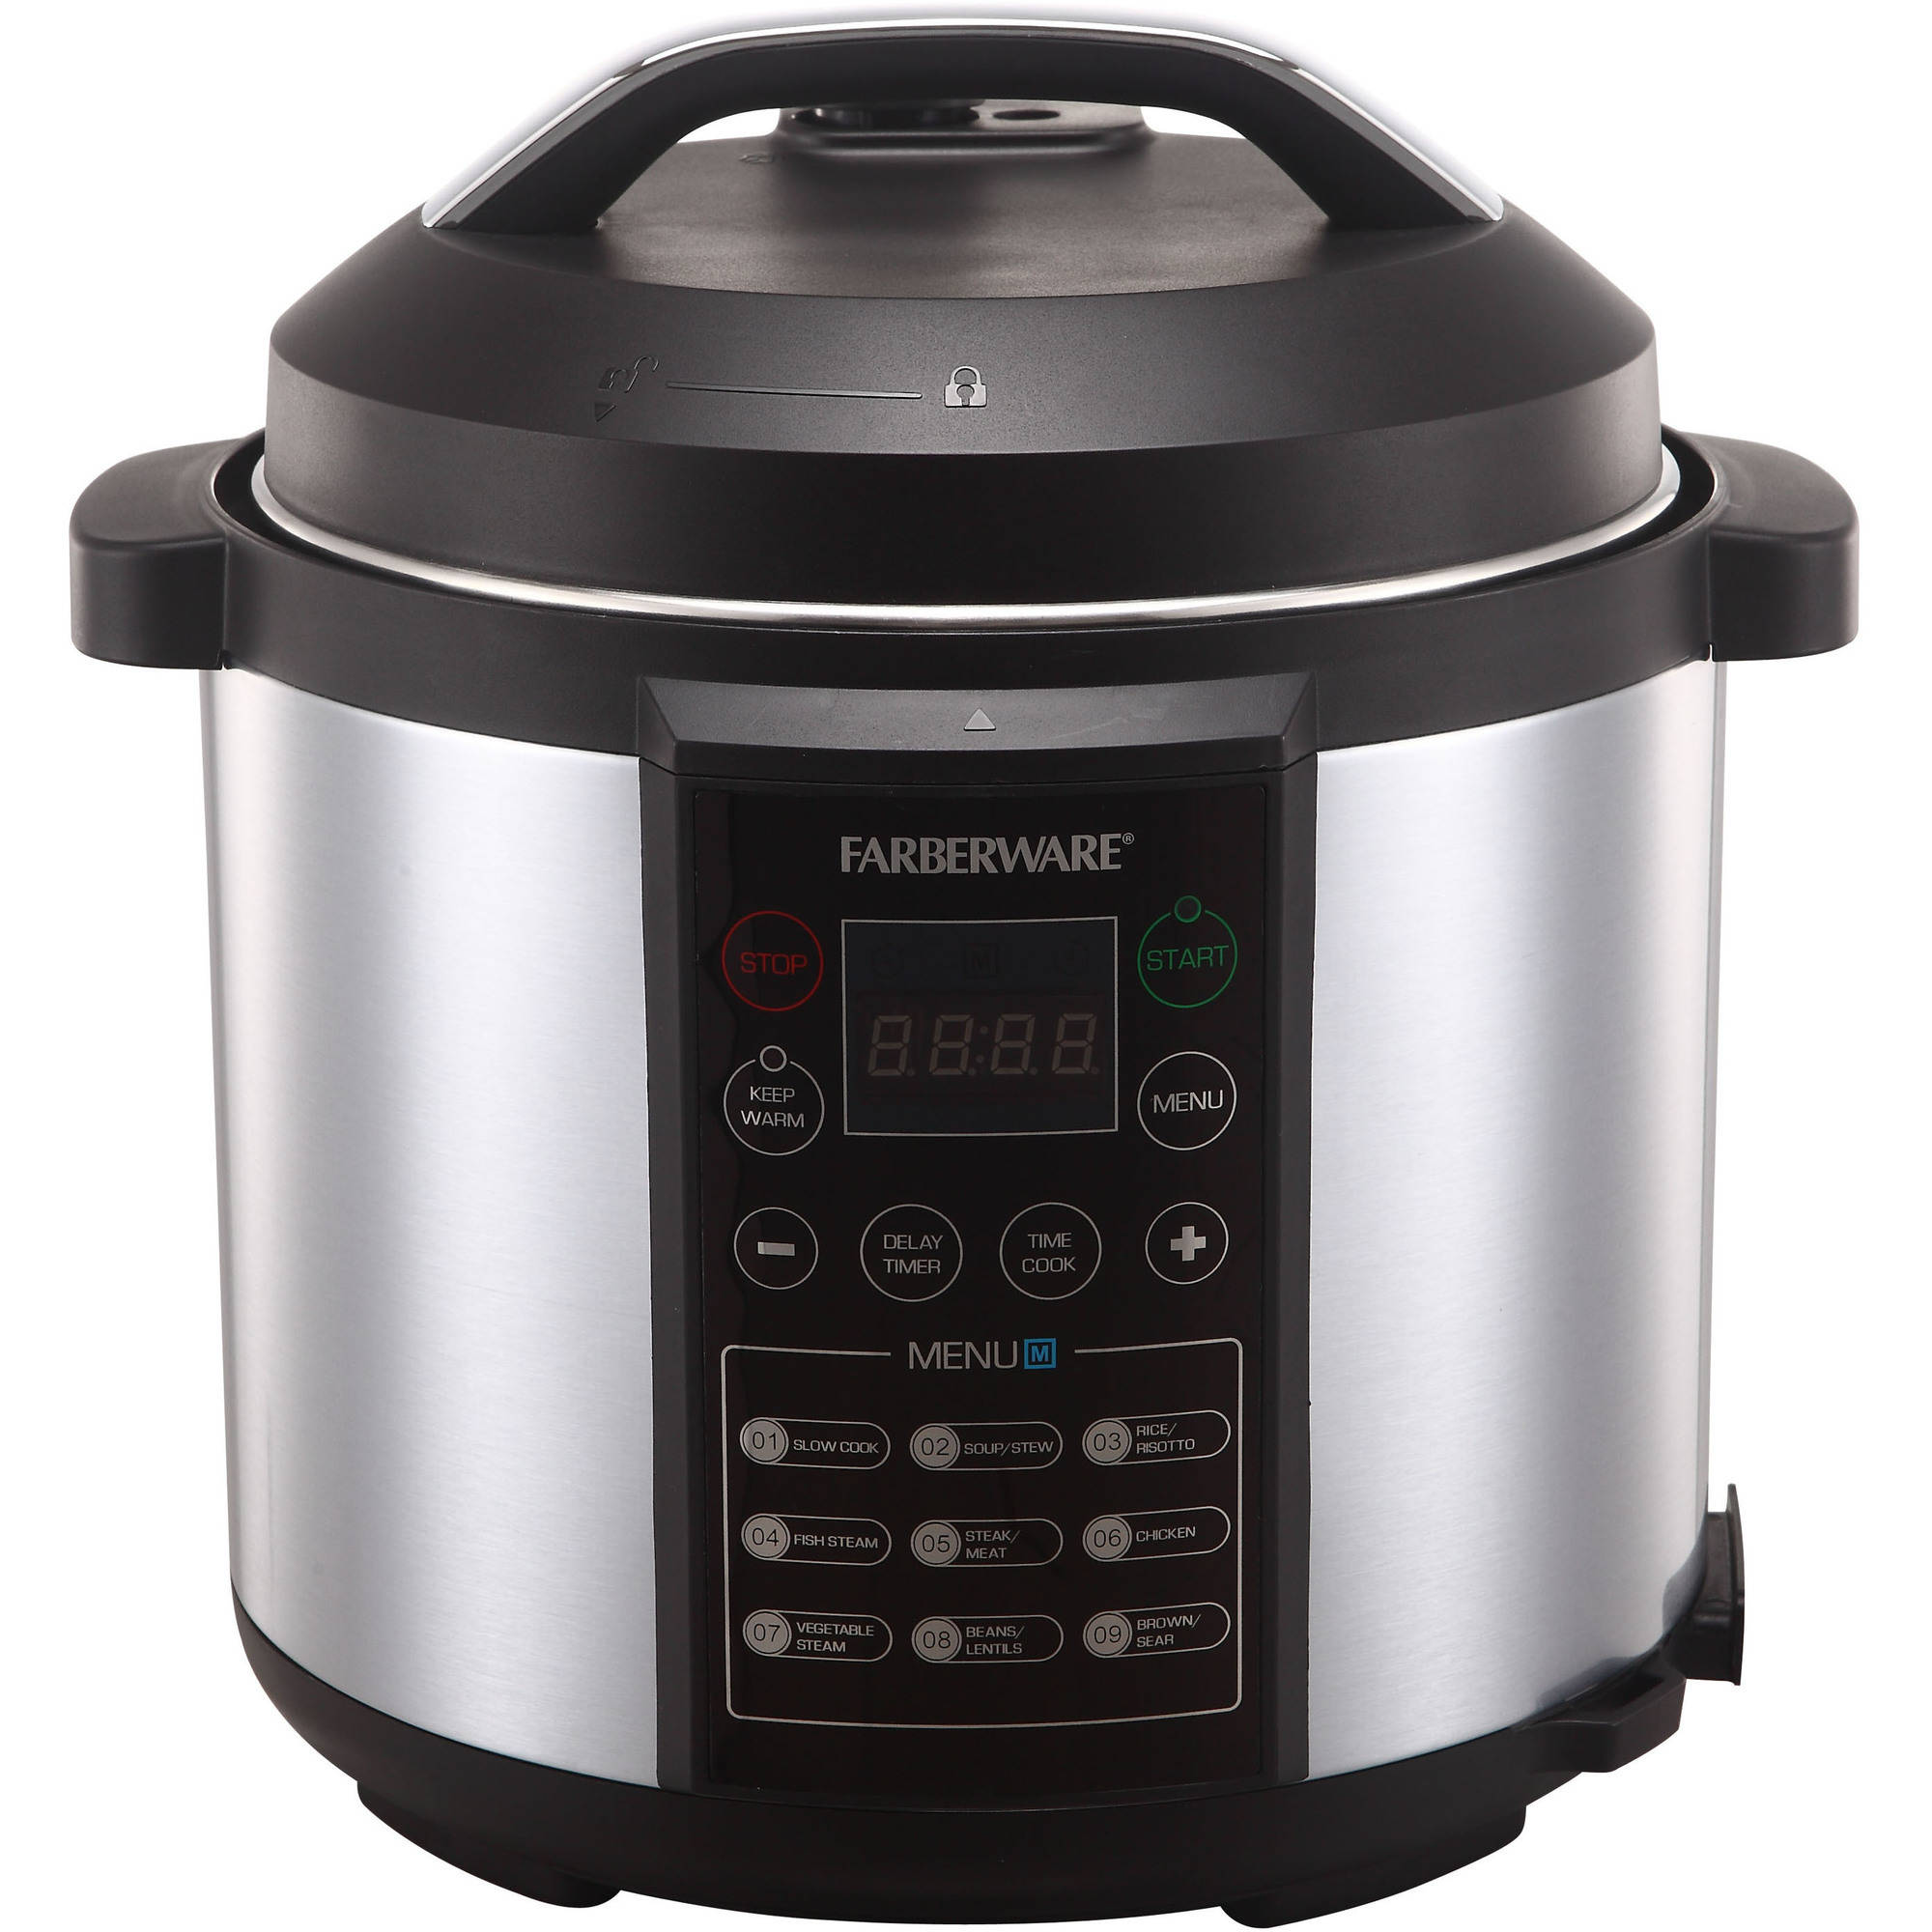 Kitchen small appliances victoria bc - Farberware 6 Qt Digital Pressure Cooker